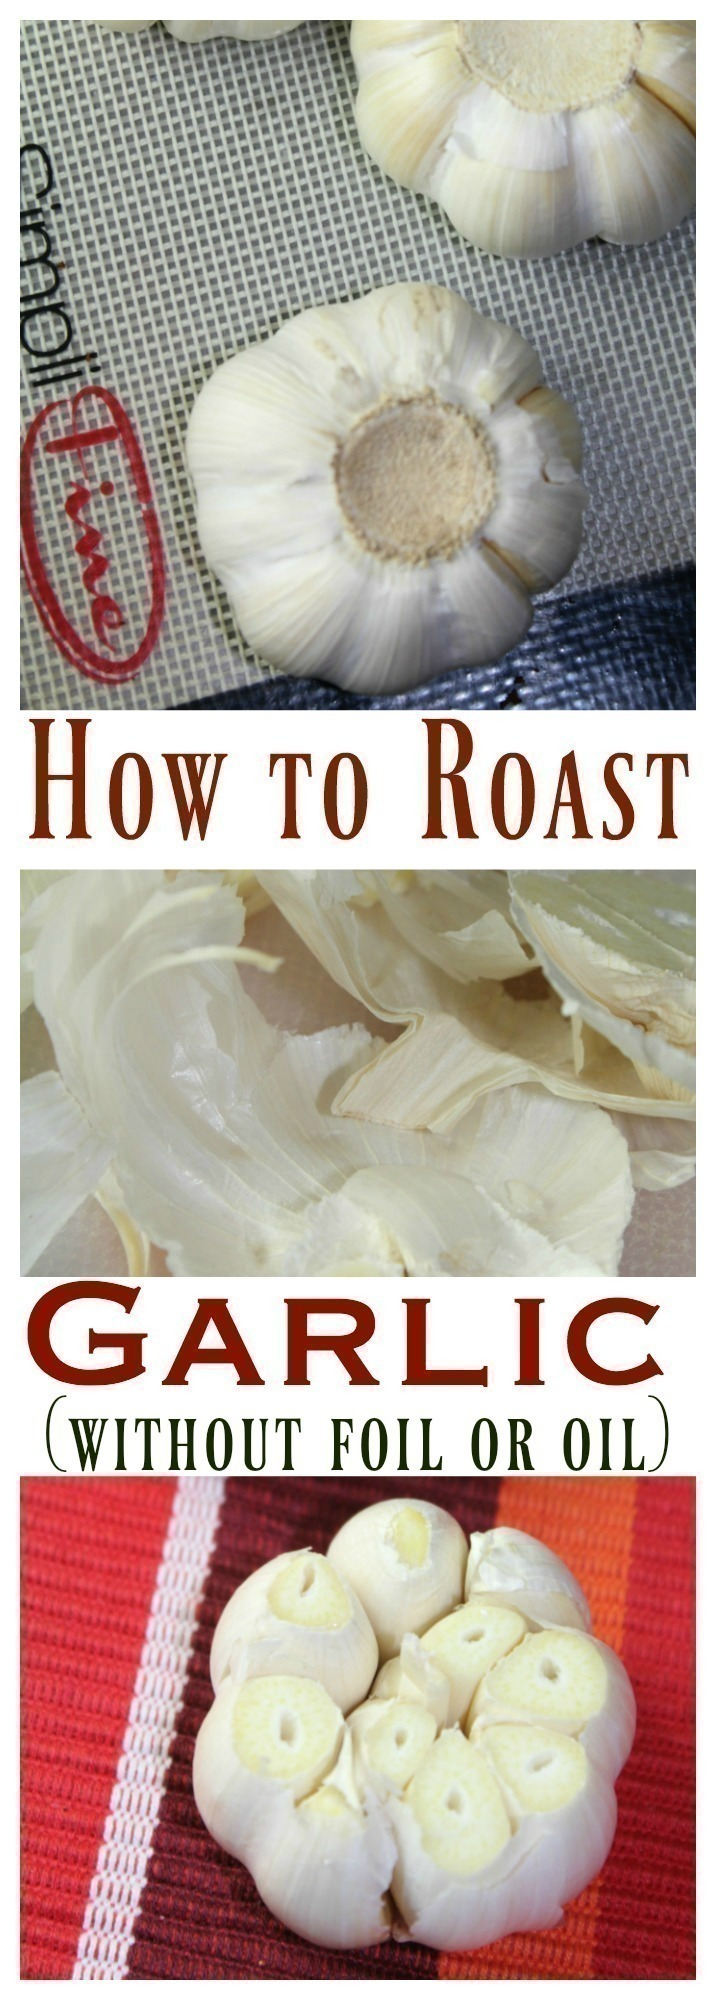 How to Roast Garlic without Aluminum Foil or Oil